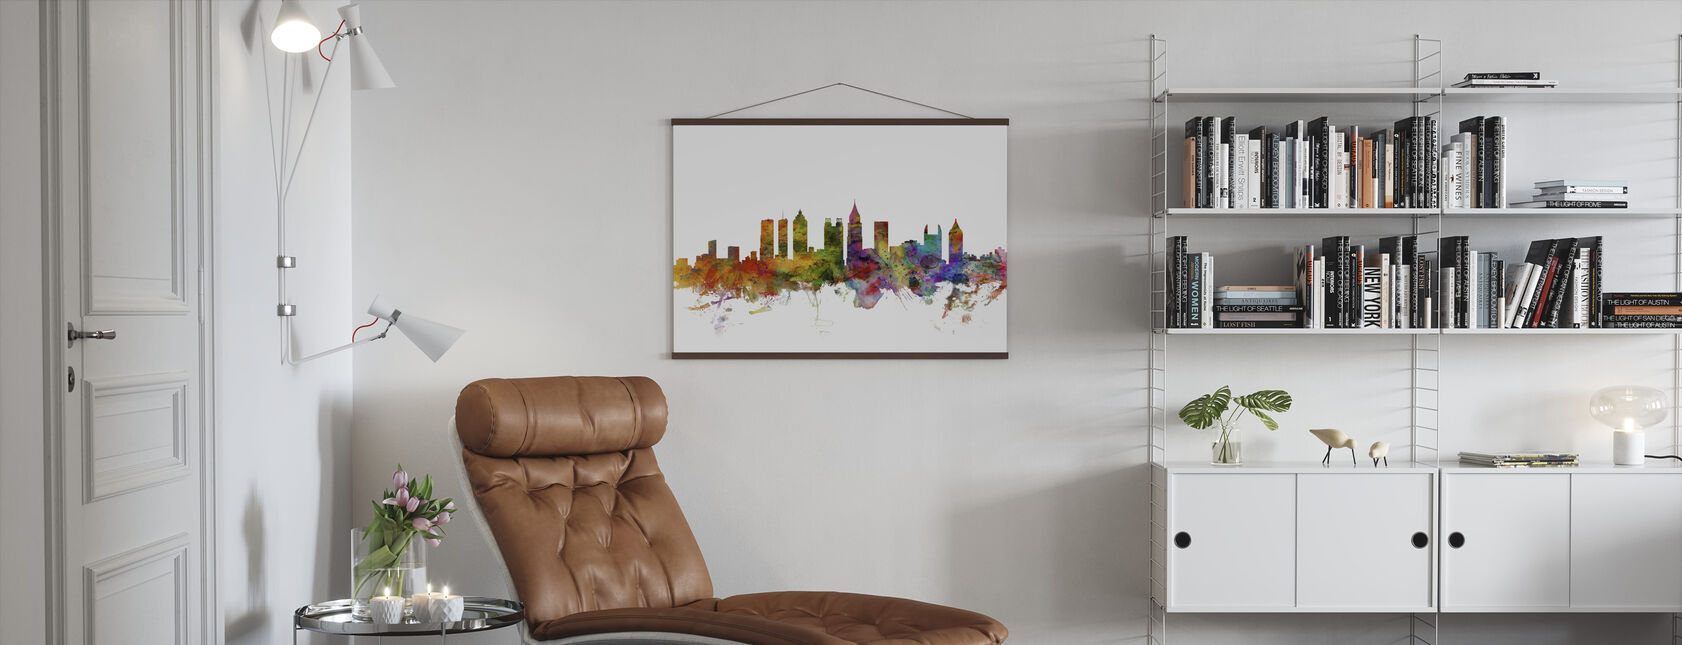 Atlanta Georgia Skyline - Poster - Living Room